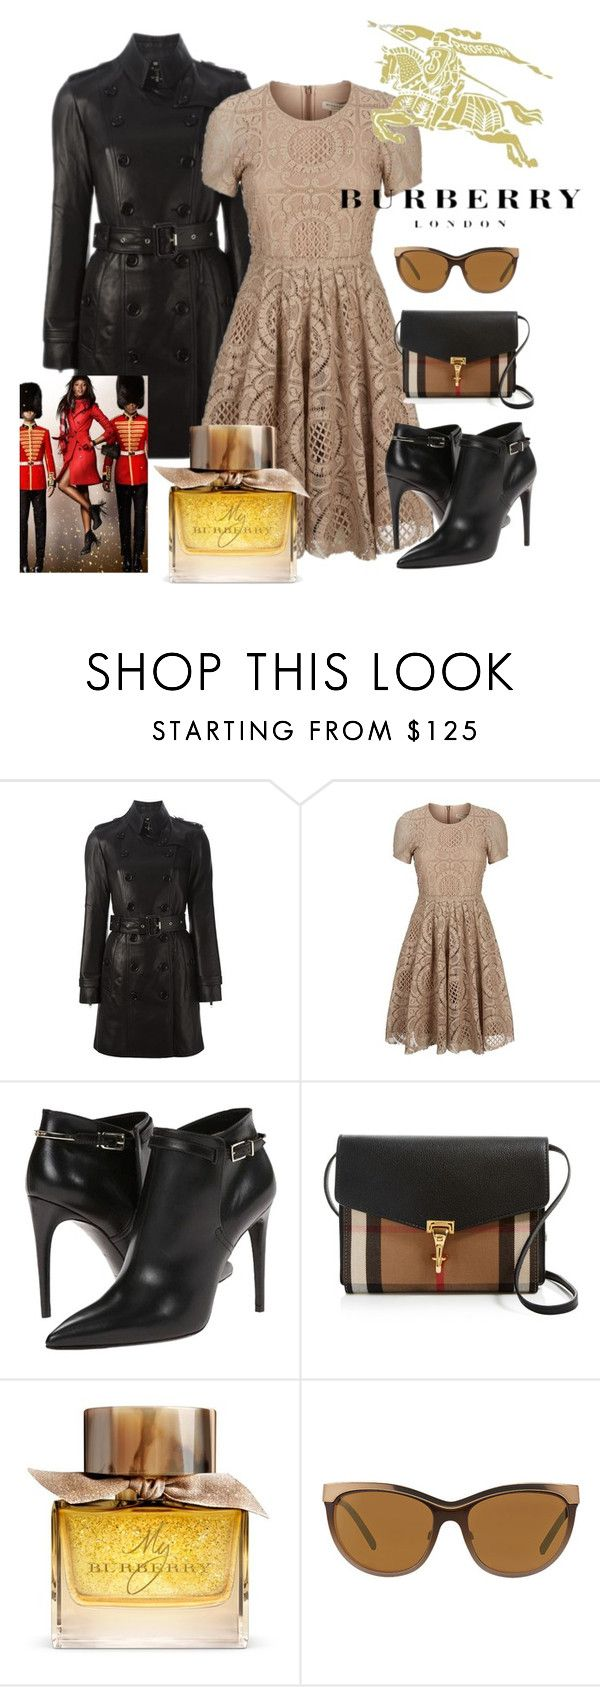 """""""Feel the Love for Burberry!"""" by brandonandrews500 ❤ liked on Polyvore featuring Burberry"""